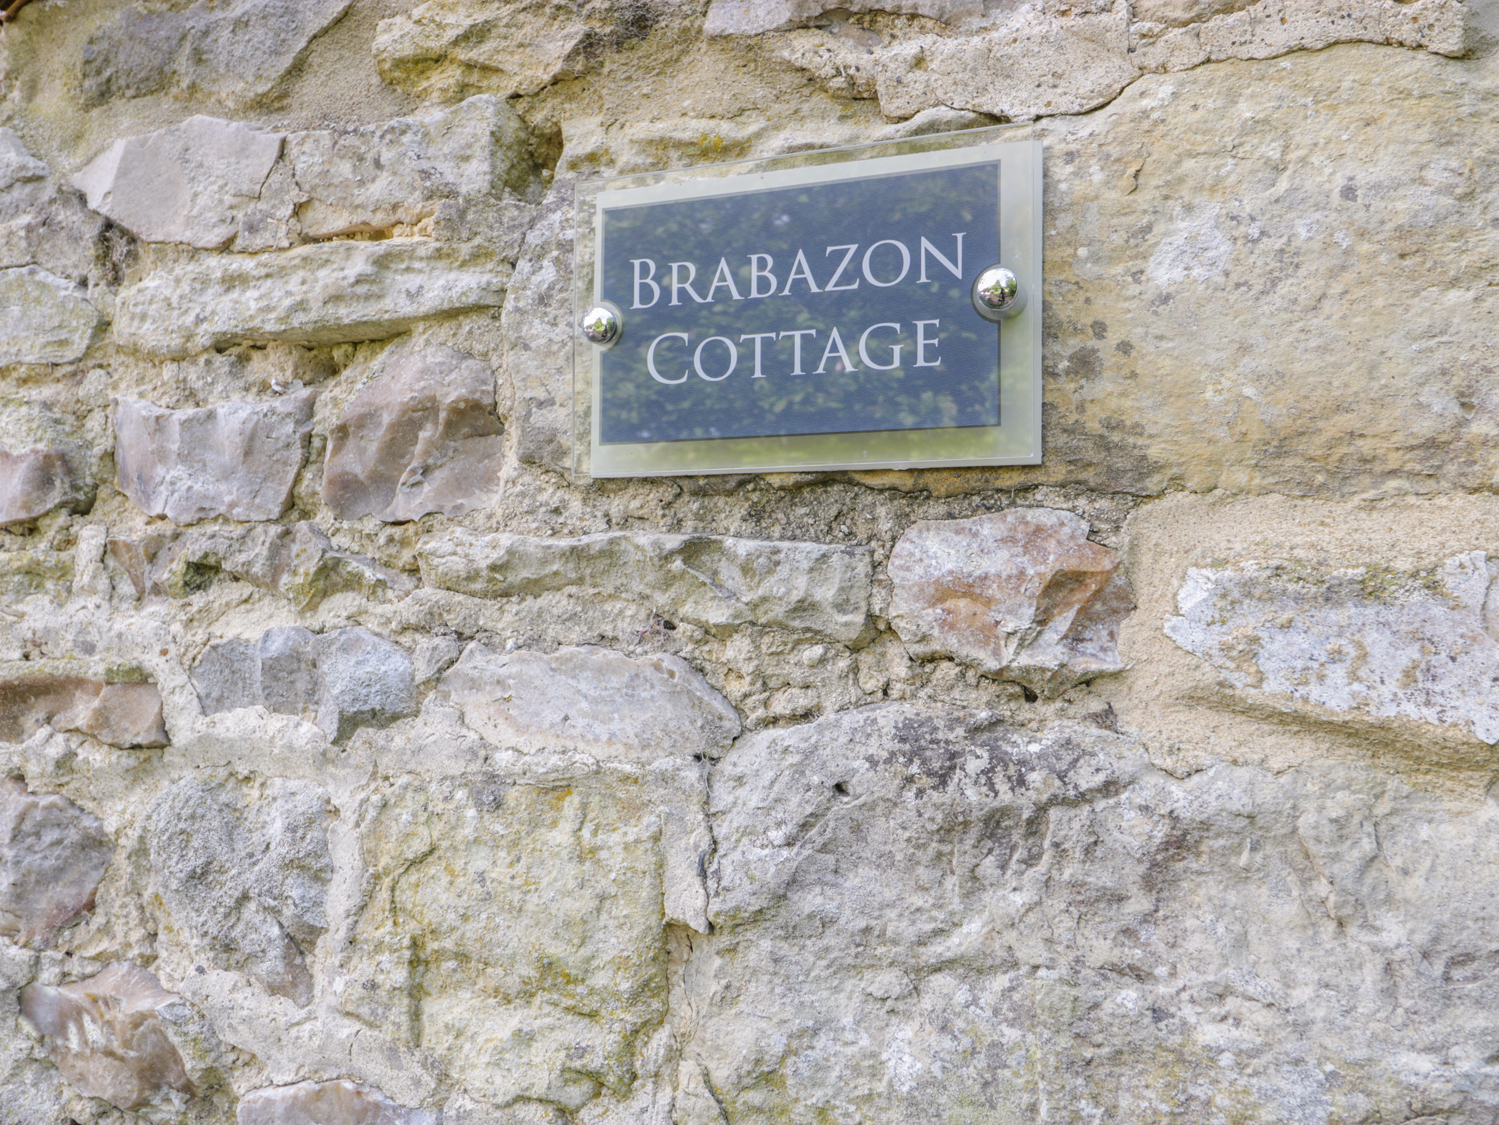 Brabazon Cottage